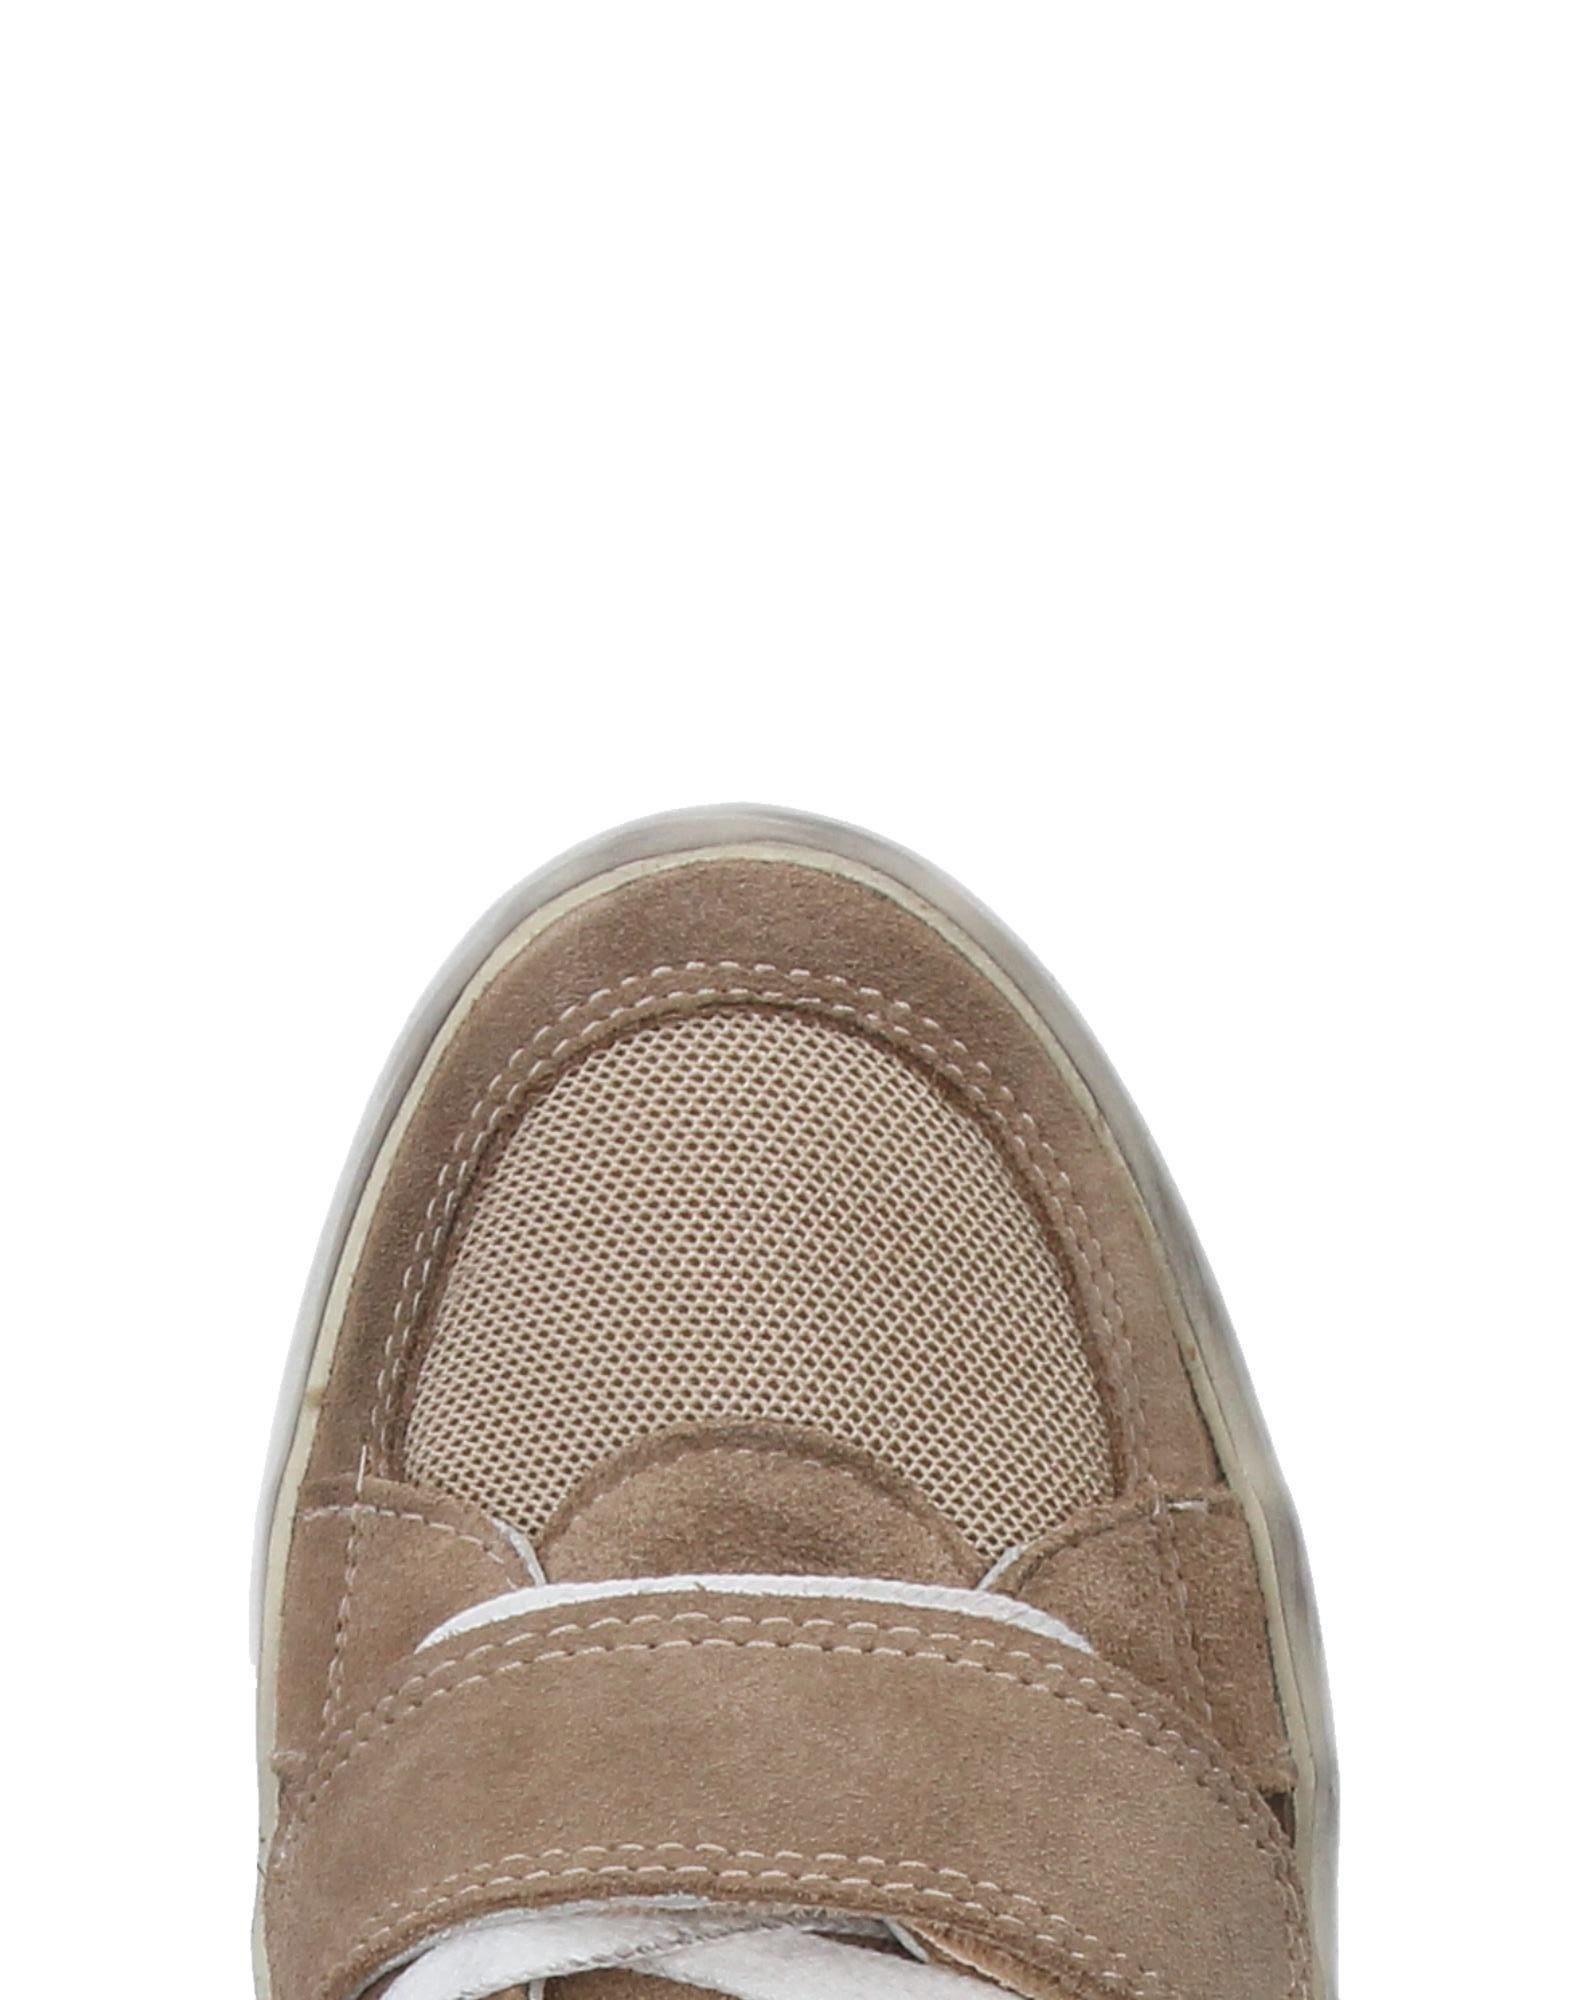 Philippe Model Rubber High-tops & Sneakers in Khaki (Natural)